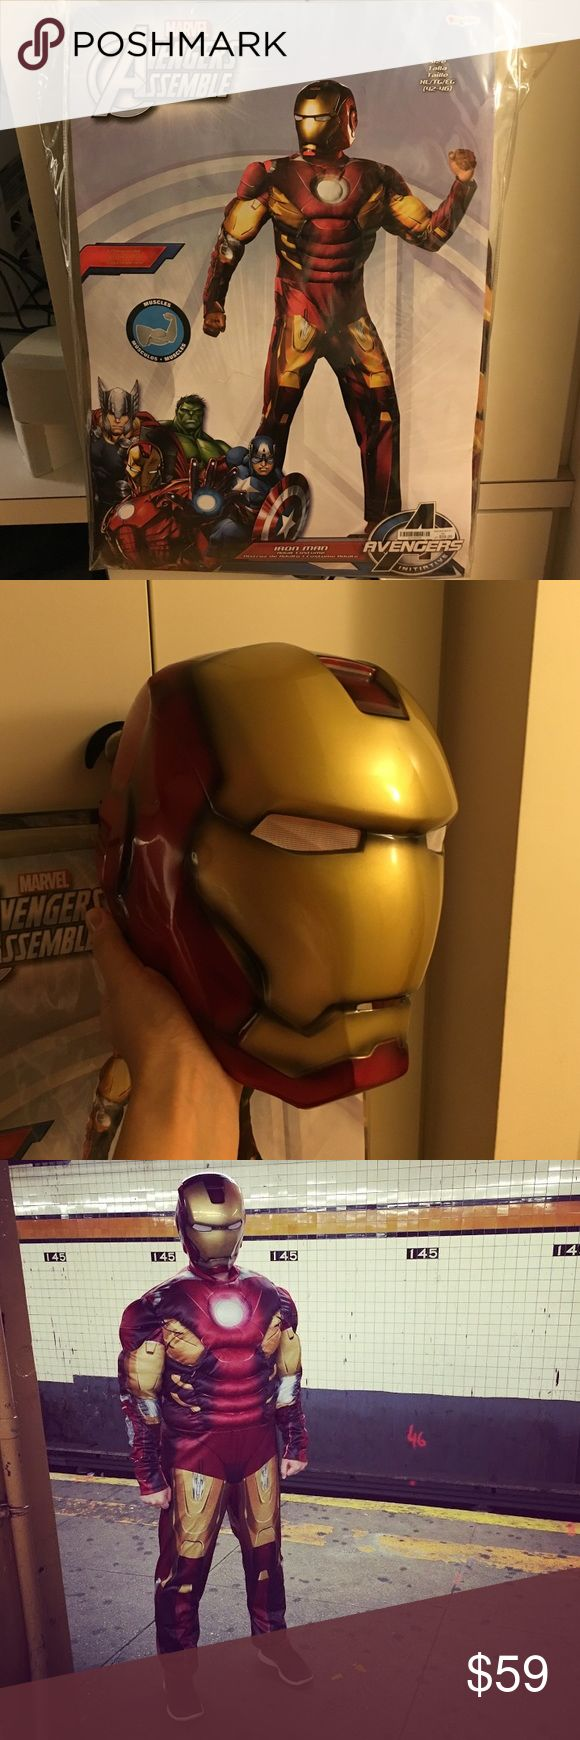 Marvel Avengers Assemble IronMan Halloween costume Only used once, in really good shape, costume has muscles😂😂 super realistic costume, just posted one👌🏻 Marvel Other